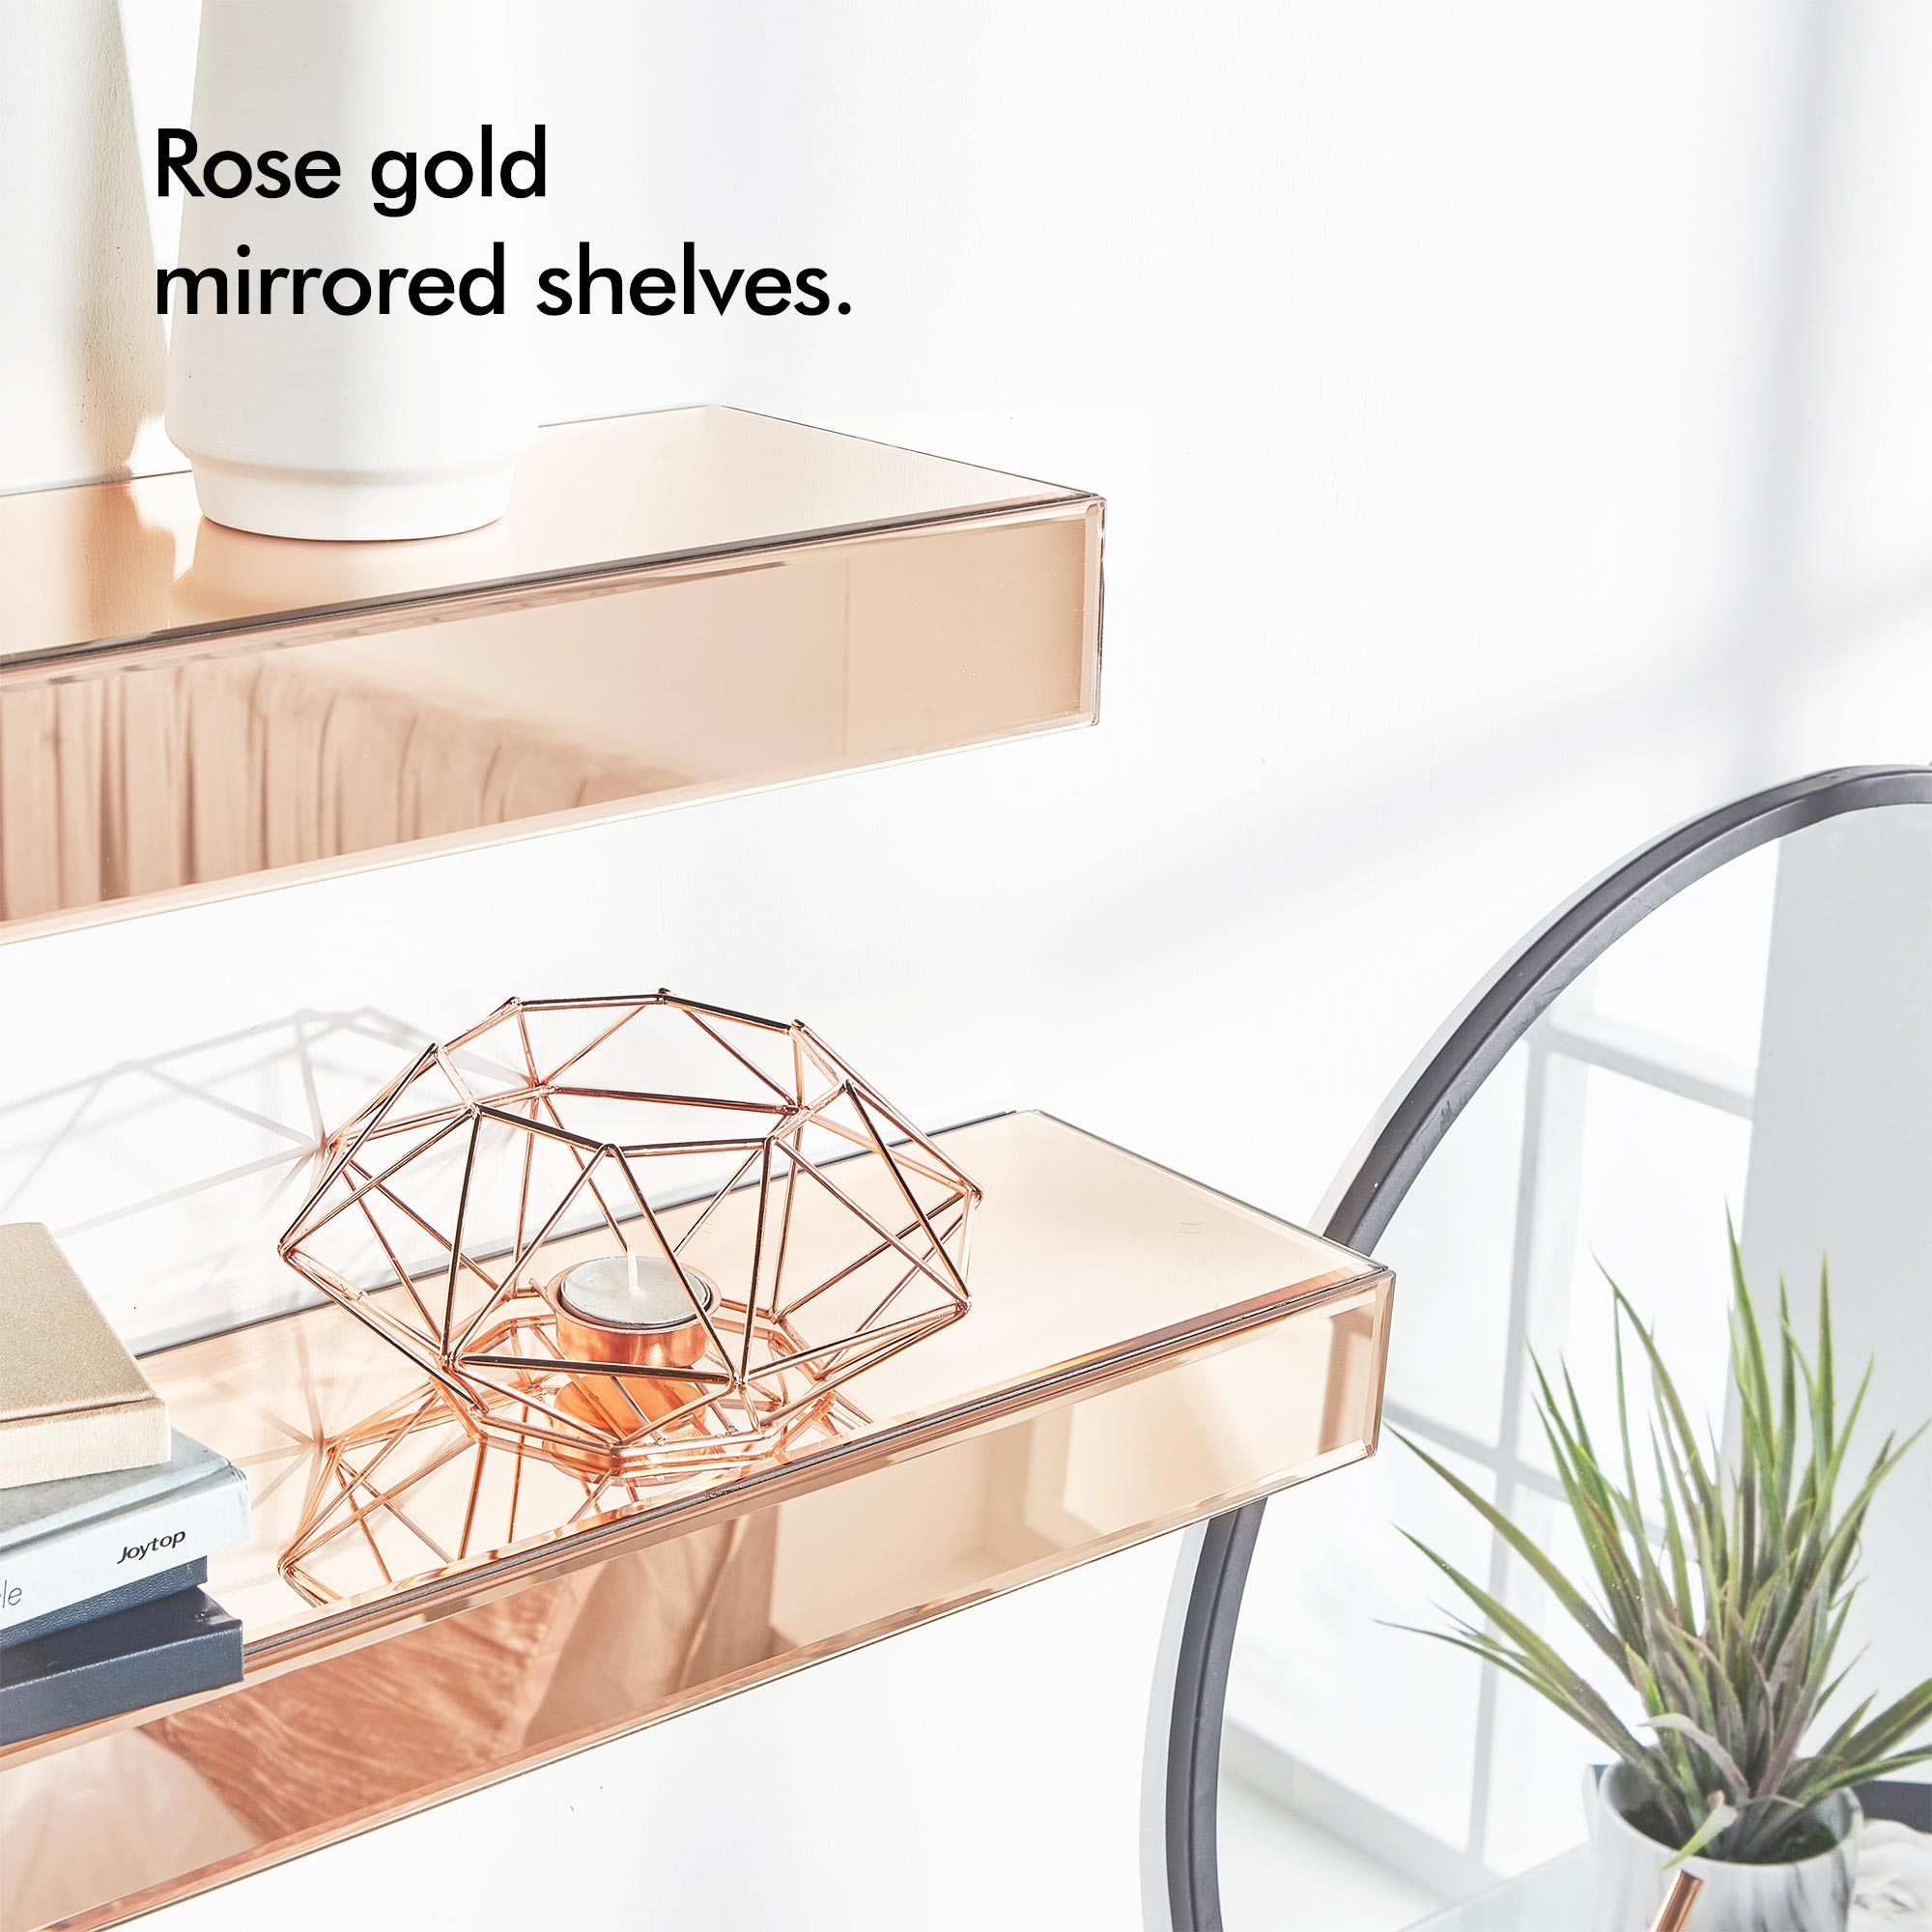 beautify set rose gold mirrored shelves floating display sentinel ledges large small storage custom wood corner shelf entryway bench and wall book stand peel stick tile concrete